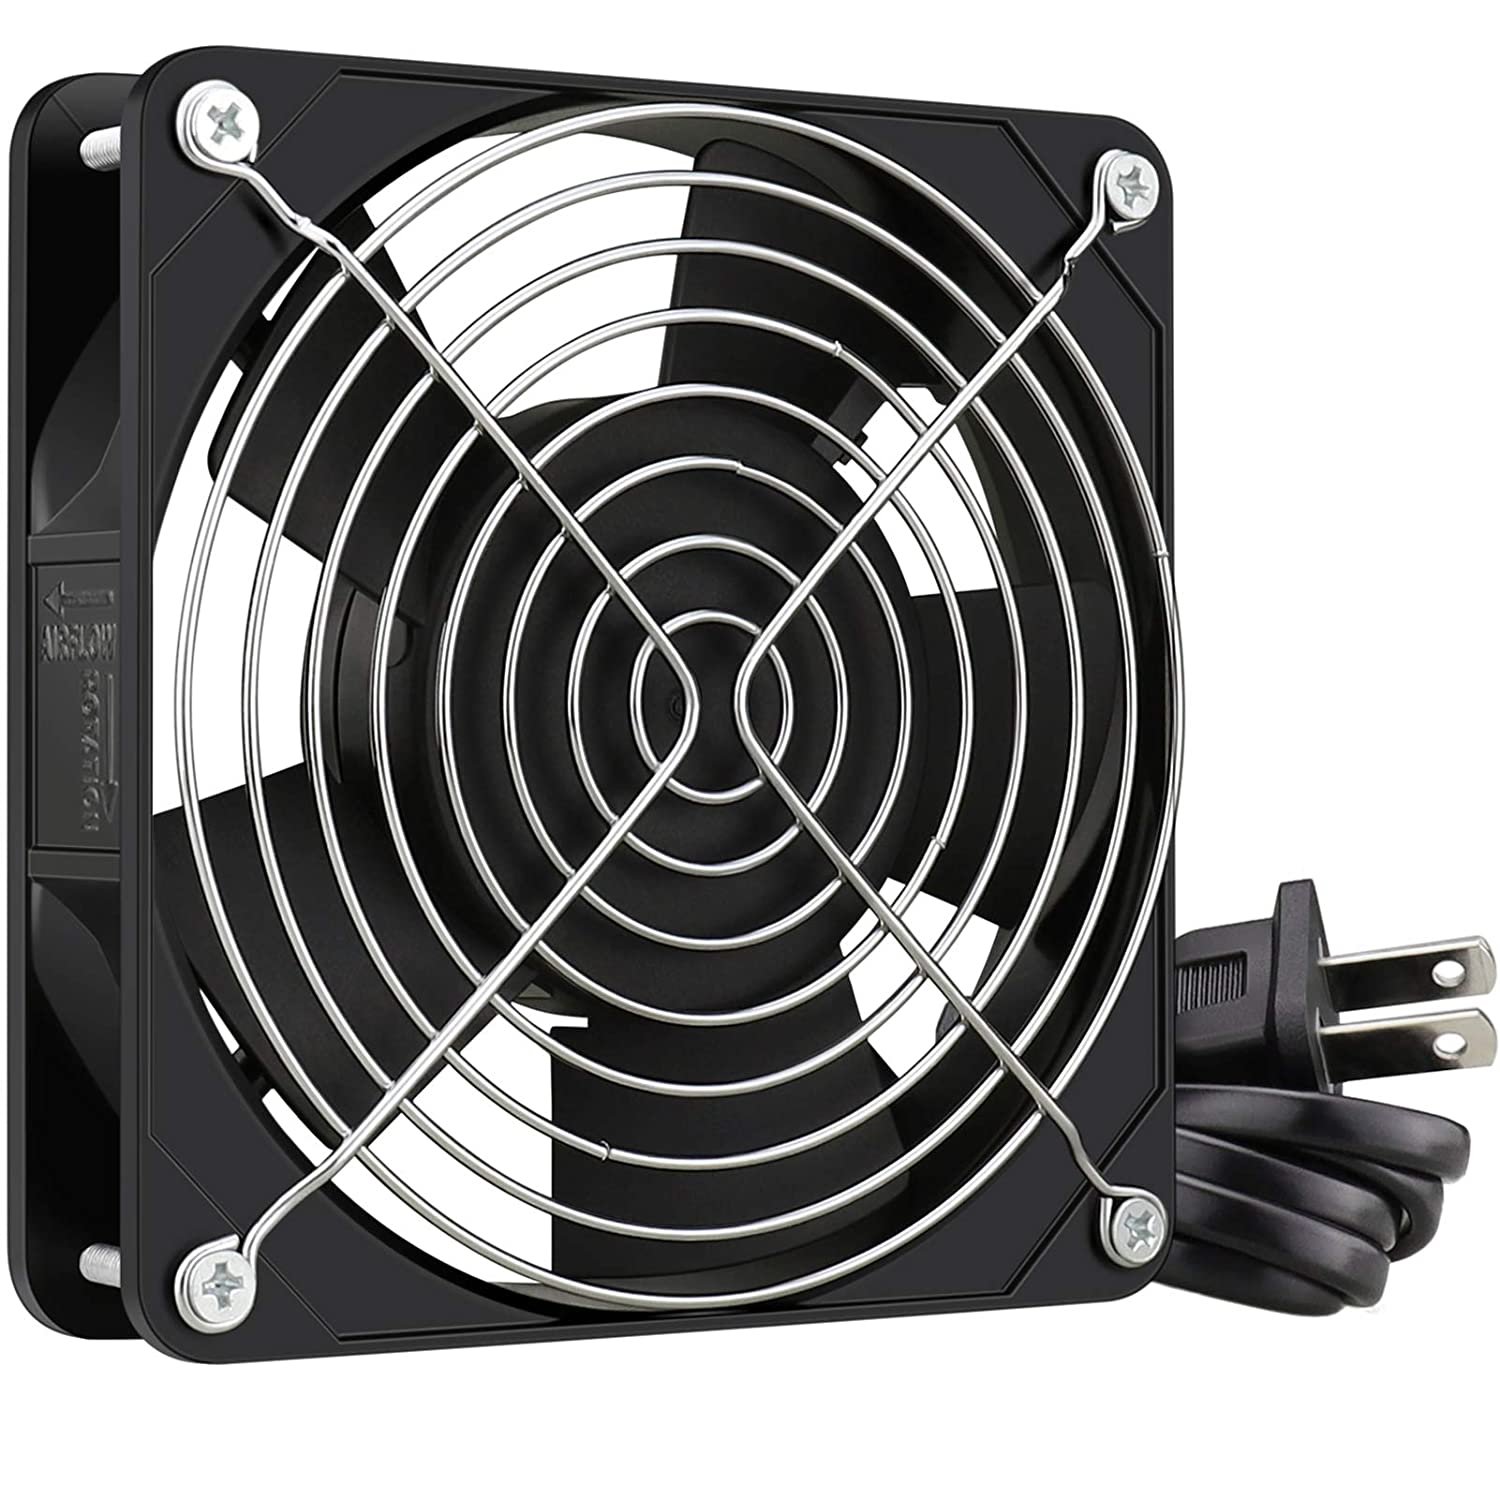 GDSTIME 120mm x 25mm 110V 115V 120V AC Powered Fan Dual Ball Bearing for DIY Cooling Ventilation Exhaust Projects